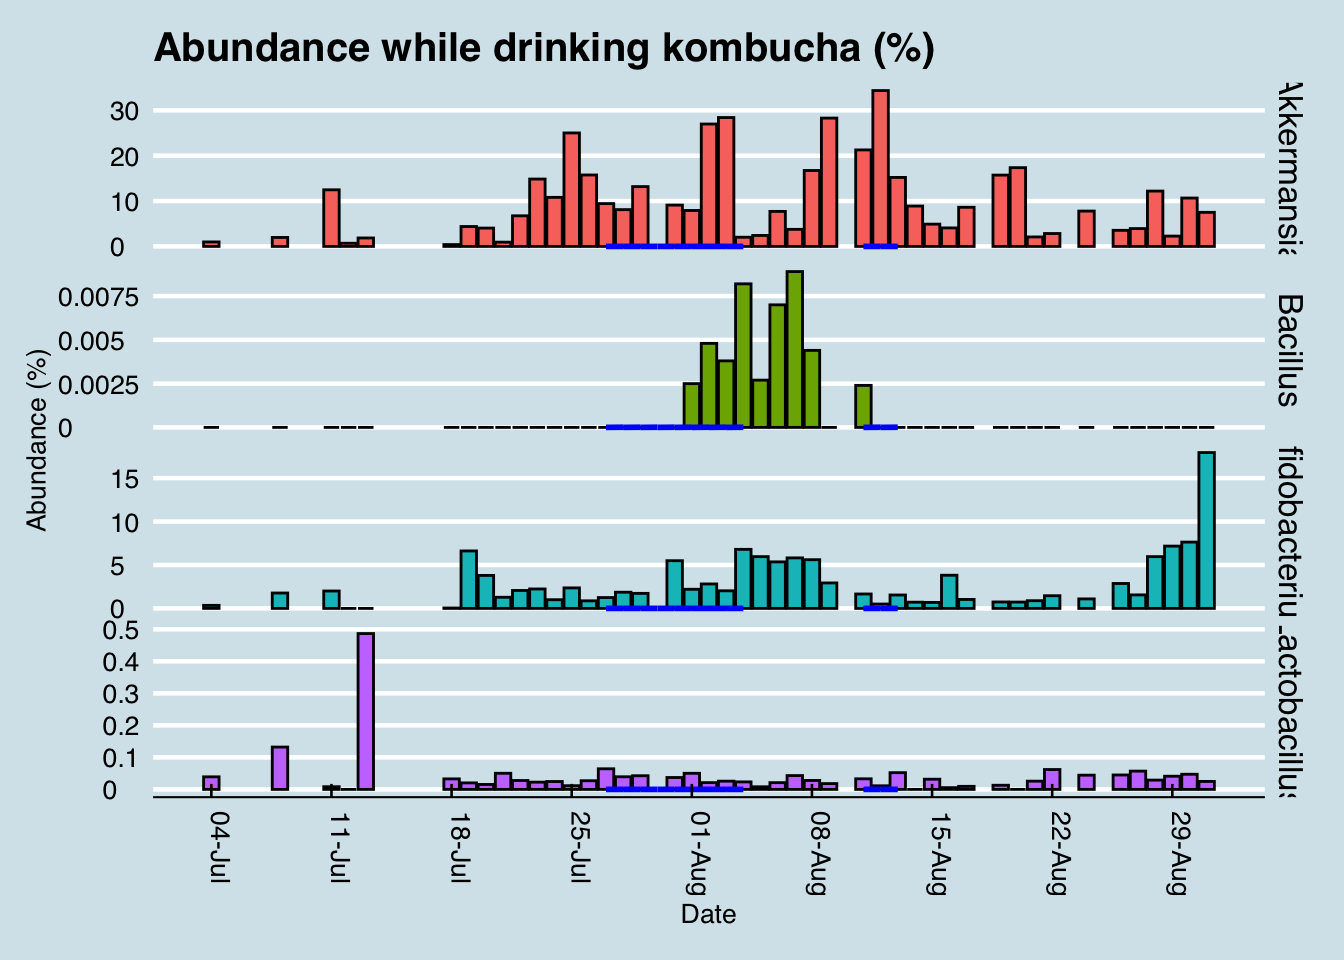 Daily abundance of key microbes while drinking kombucha (blue lines). Blank regions are days when I have no data.